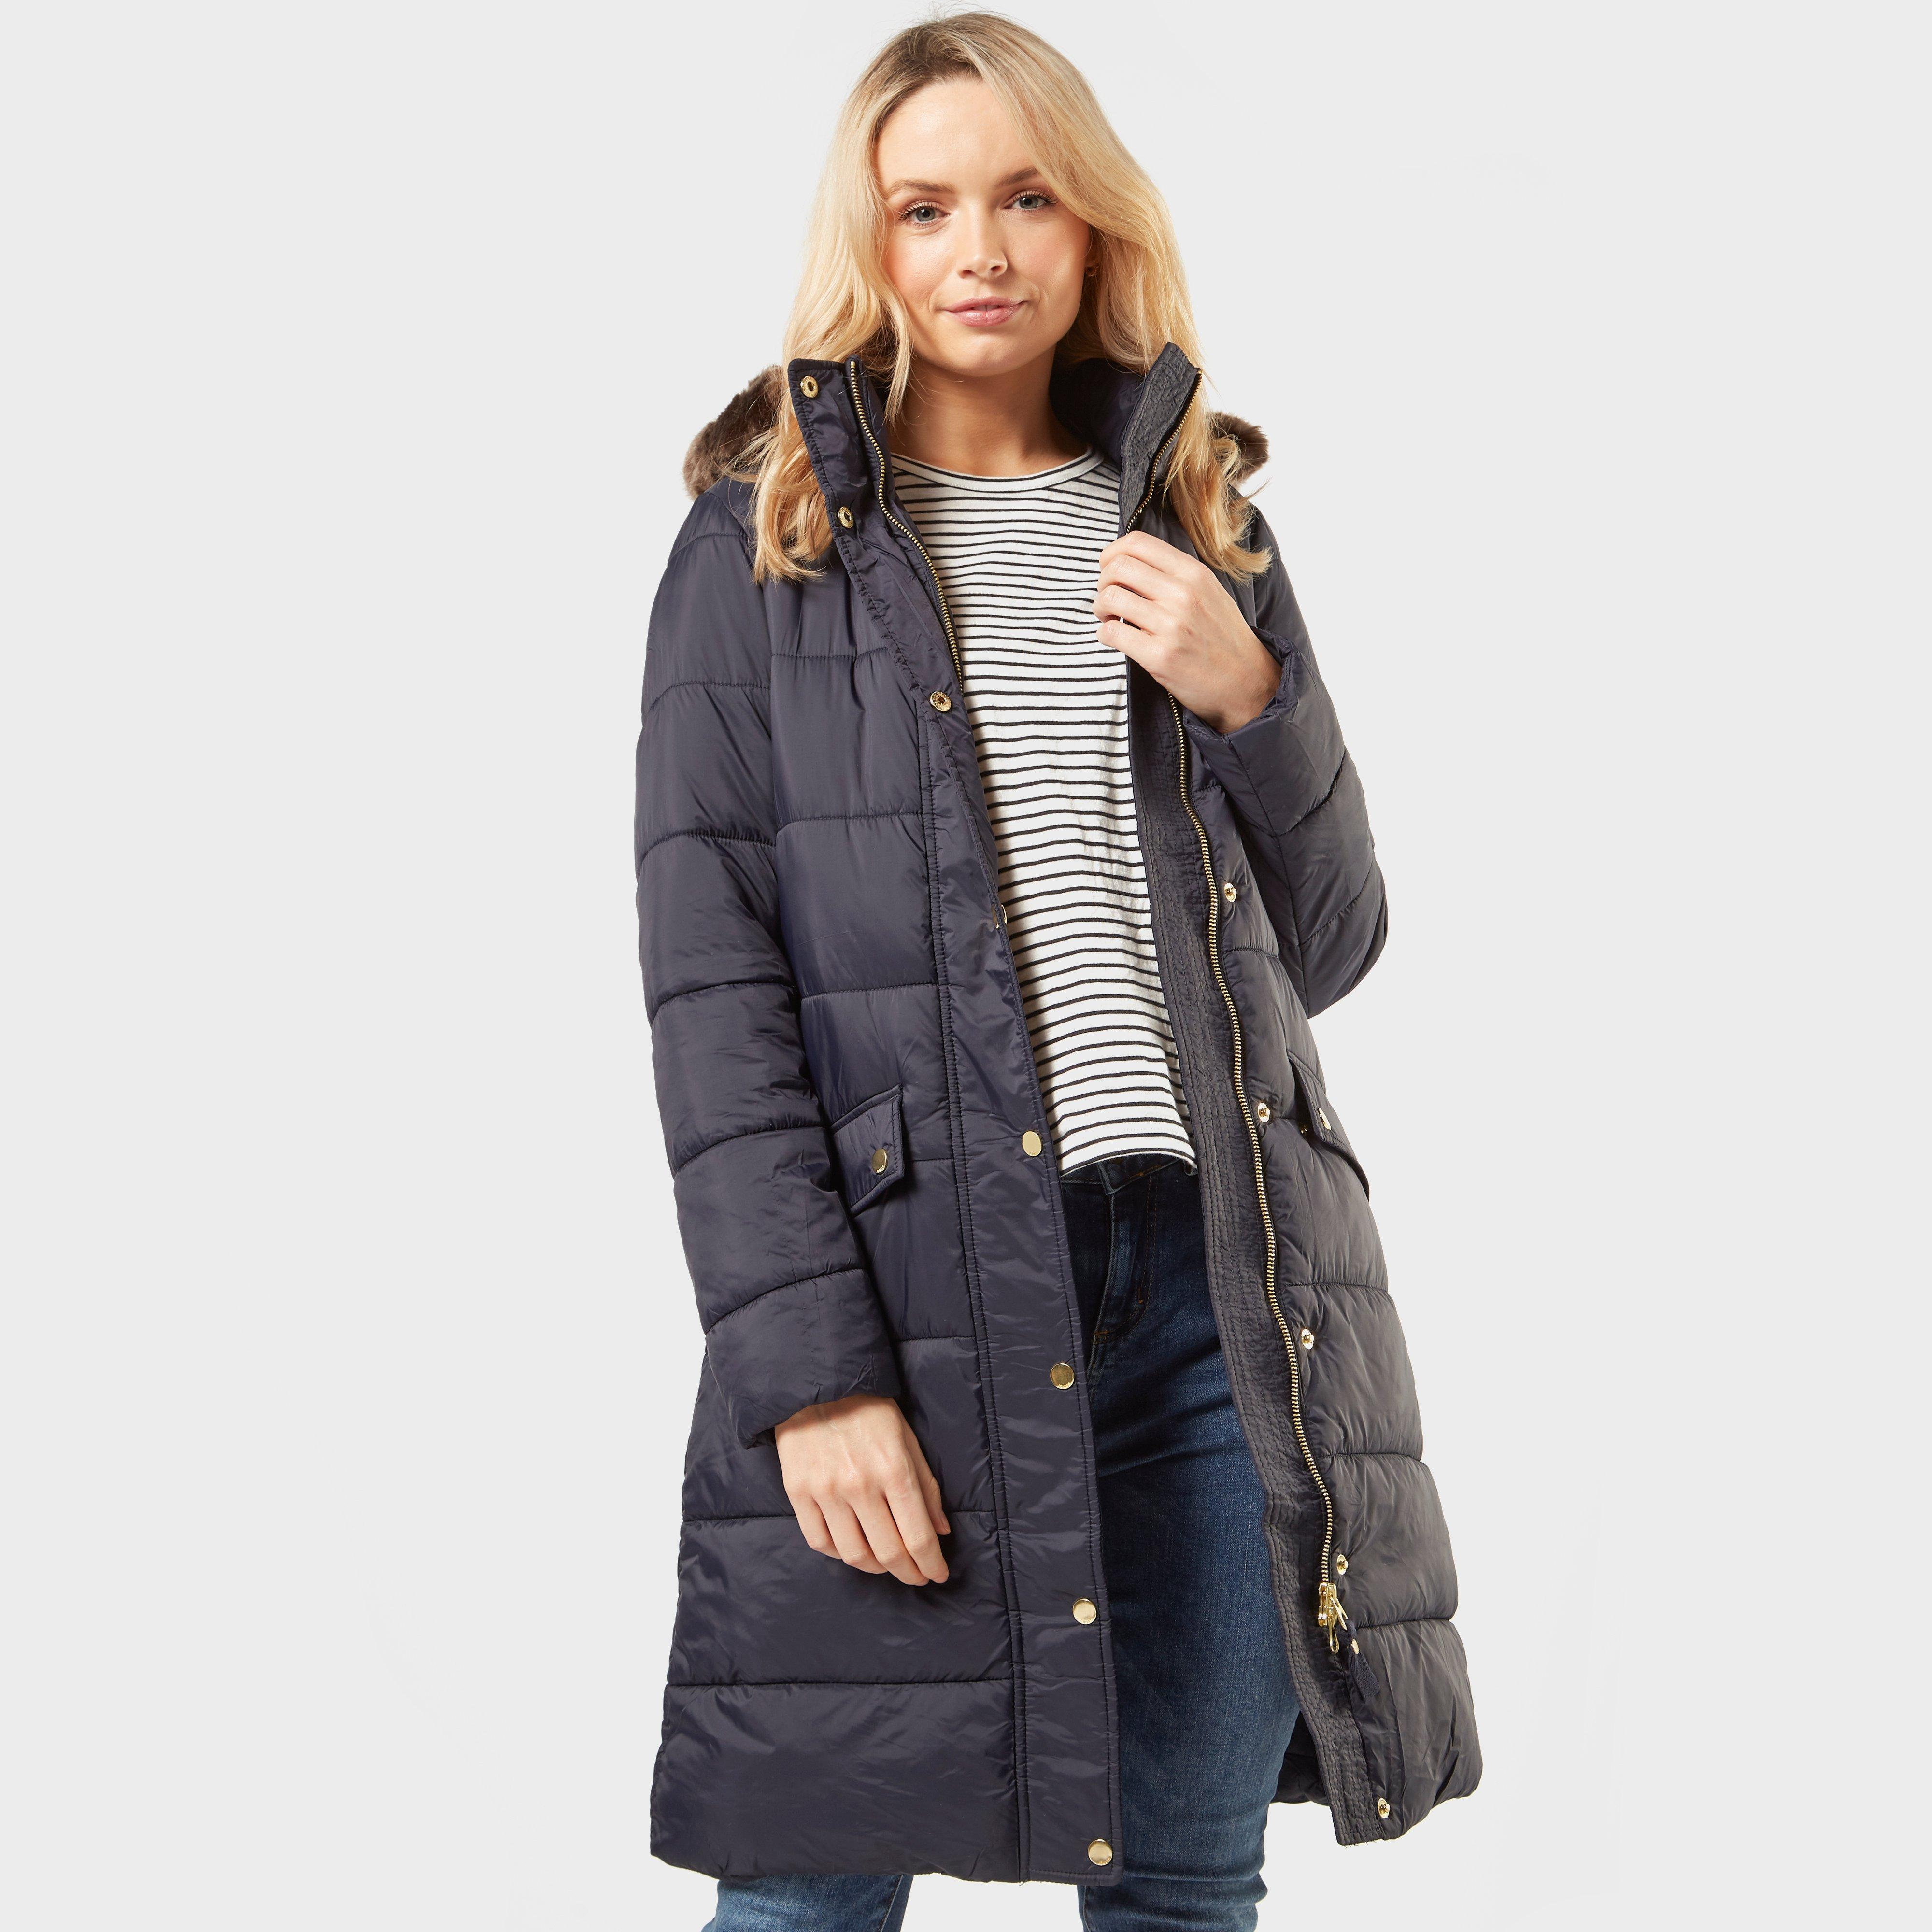 Joules Joules Womens Hartwell Longline Baffle Jacket - Navy, Navy